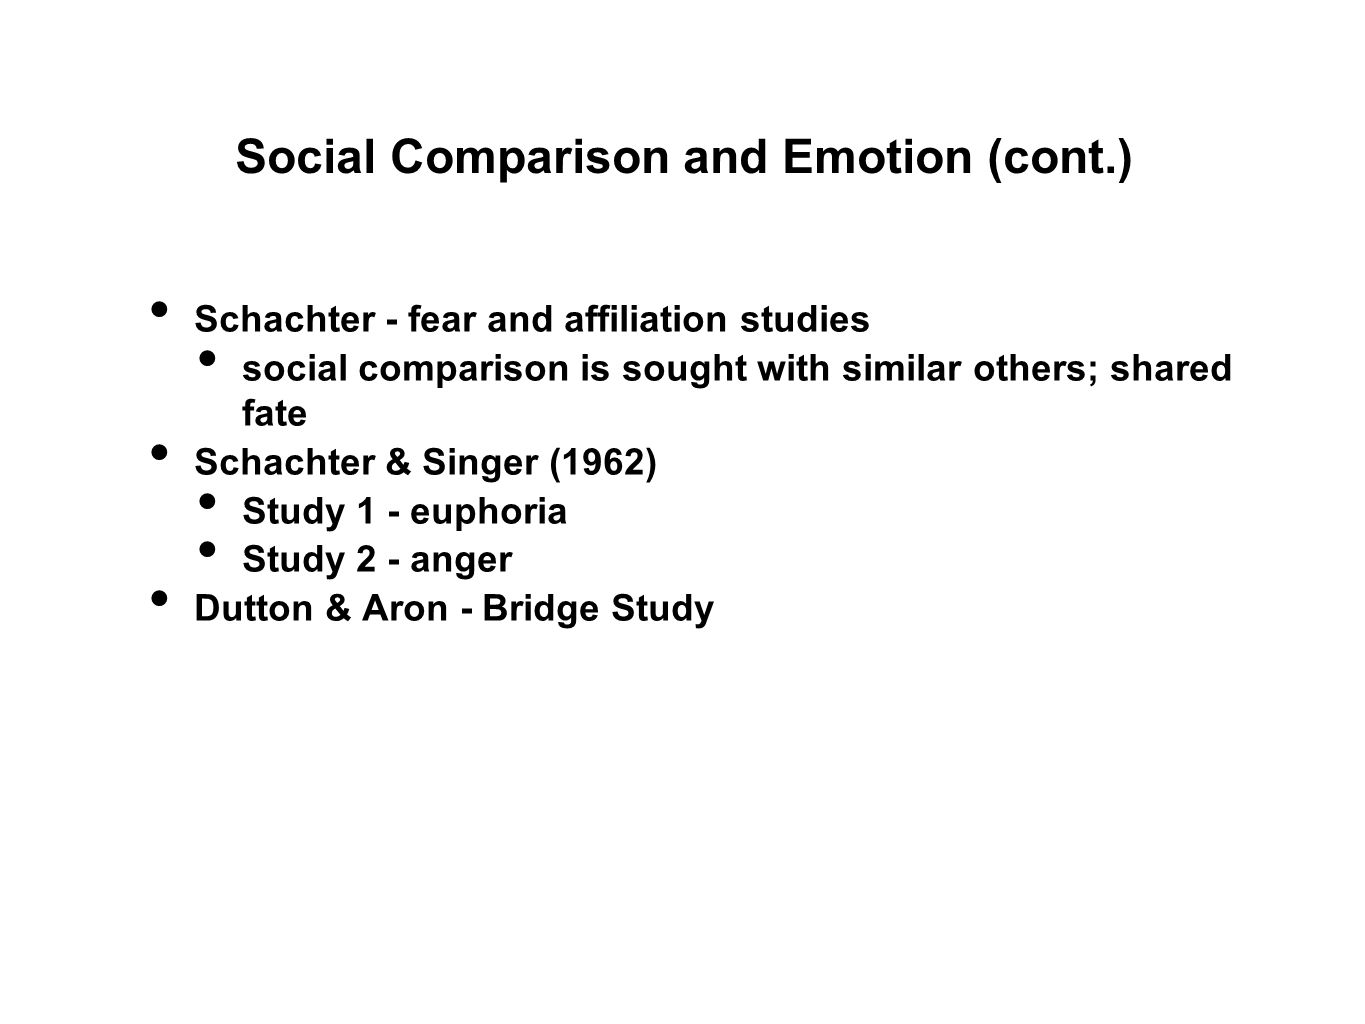 Schachter - fear and affiliation studies social comparison is sought with similar others; shared fate Schachter & Singer (1962) Study 1 - euphoria Study 2 - anger Dutton & Aron - Bridge Study Social Comparison and Emotion (cont.)